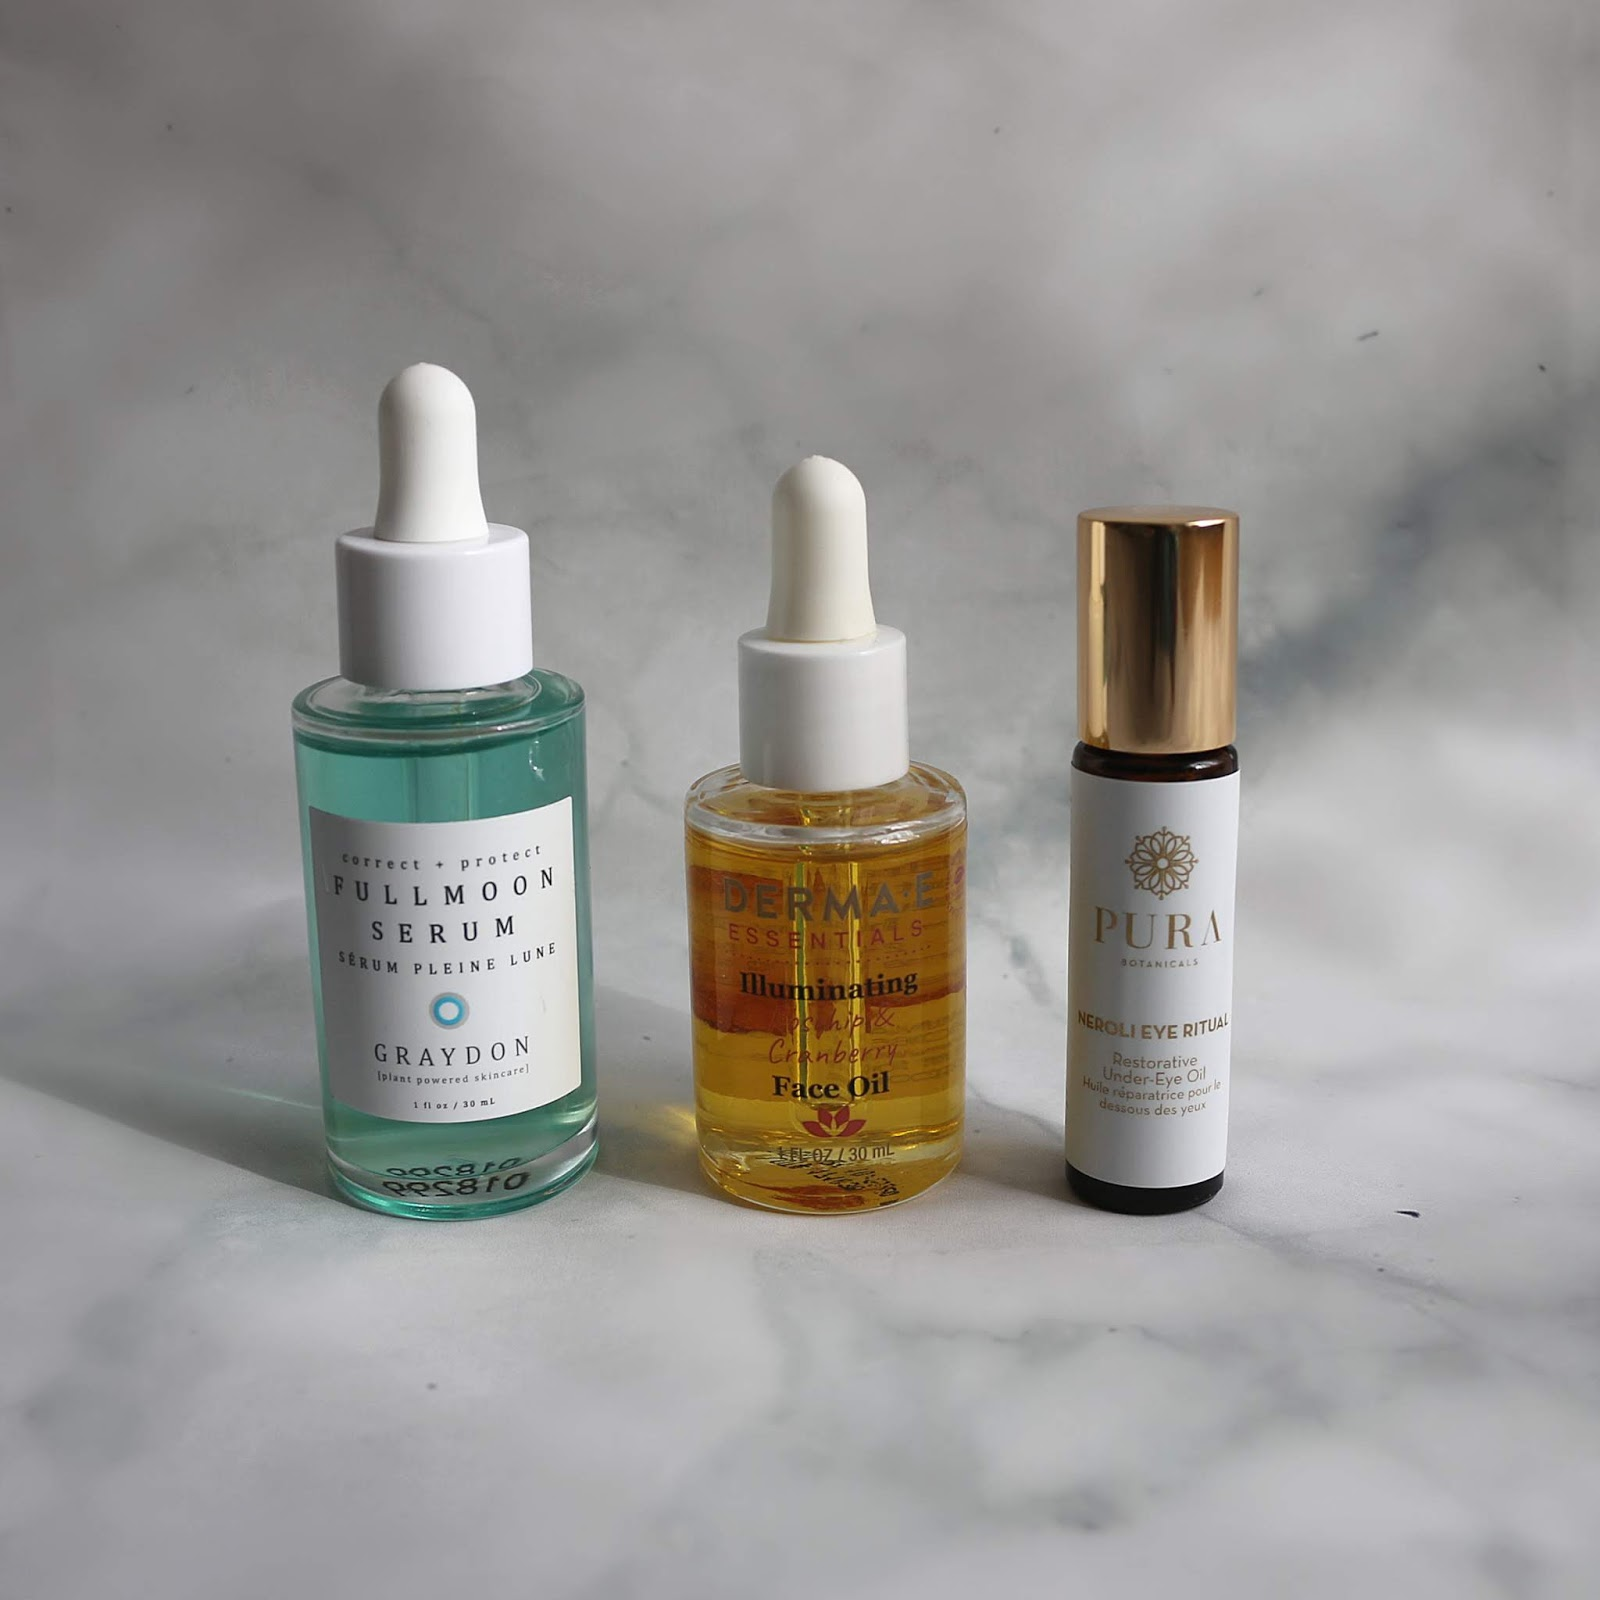 Graydon Fullmoon Serum Derma E Illuminating Rosehip Cranberry Face Oil Pura Botanicals Neroli Eye Ritual